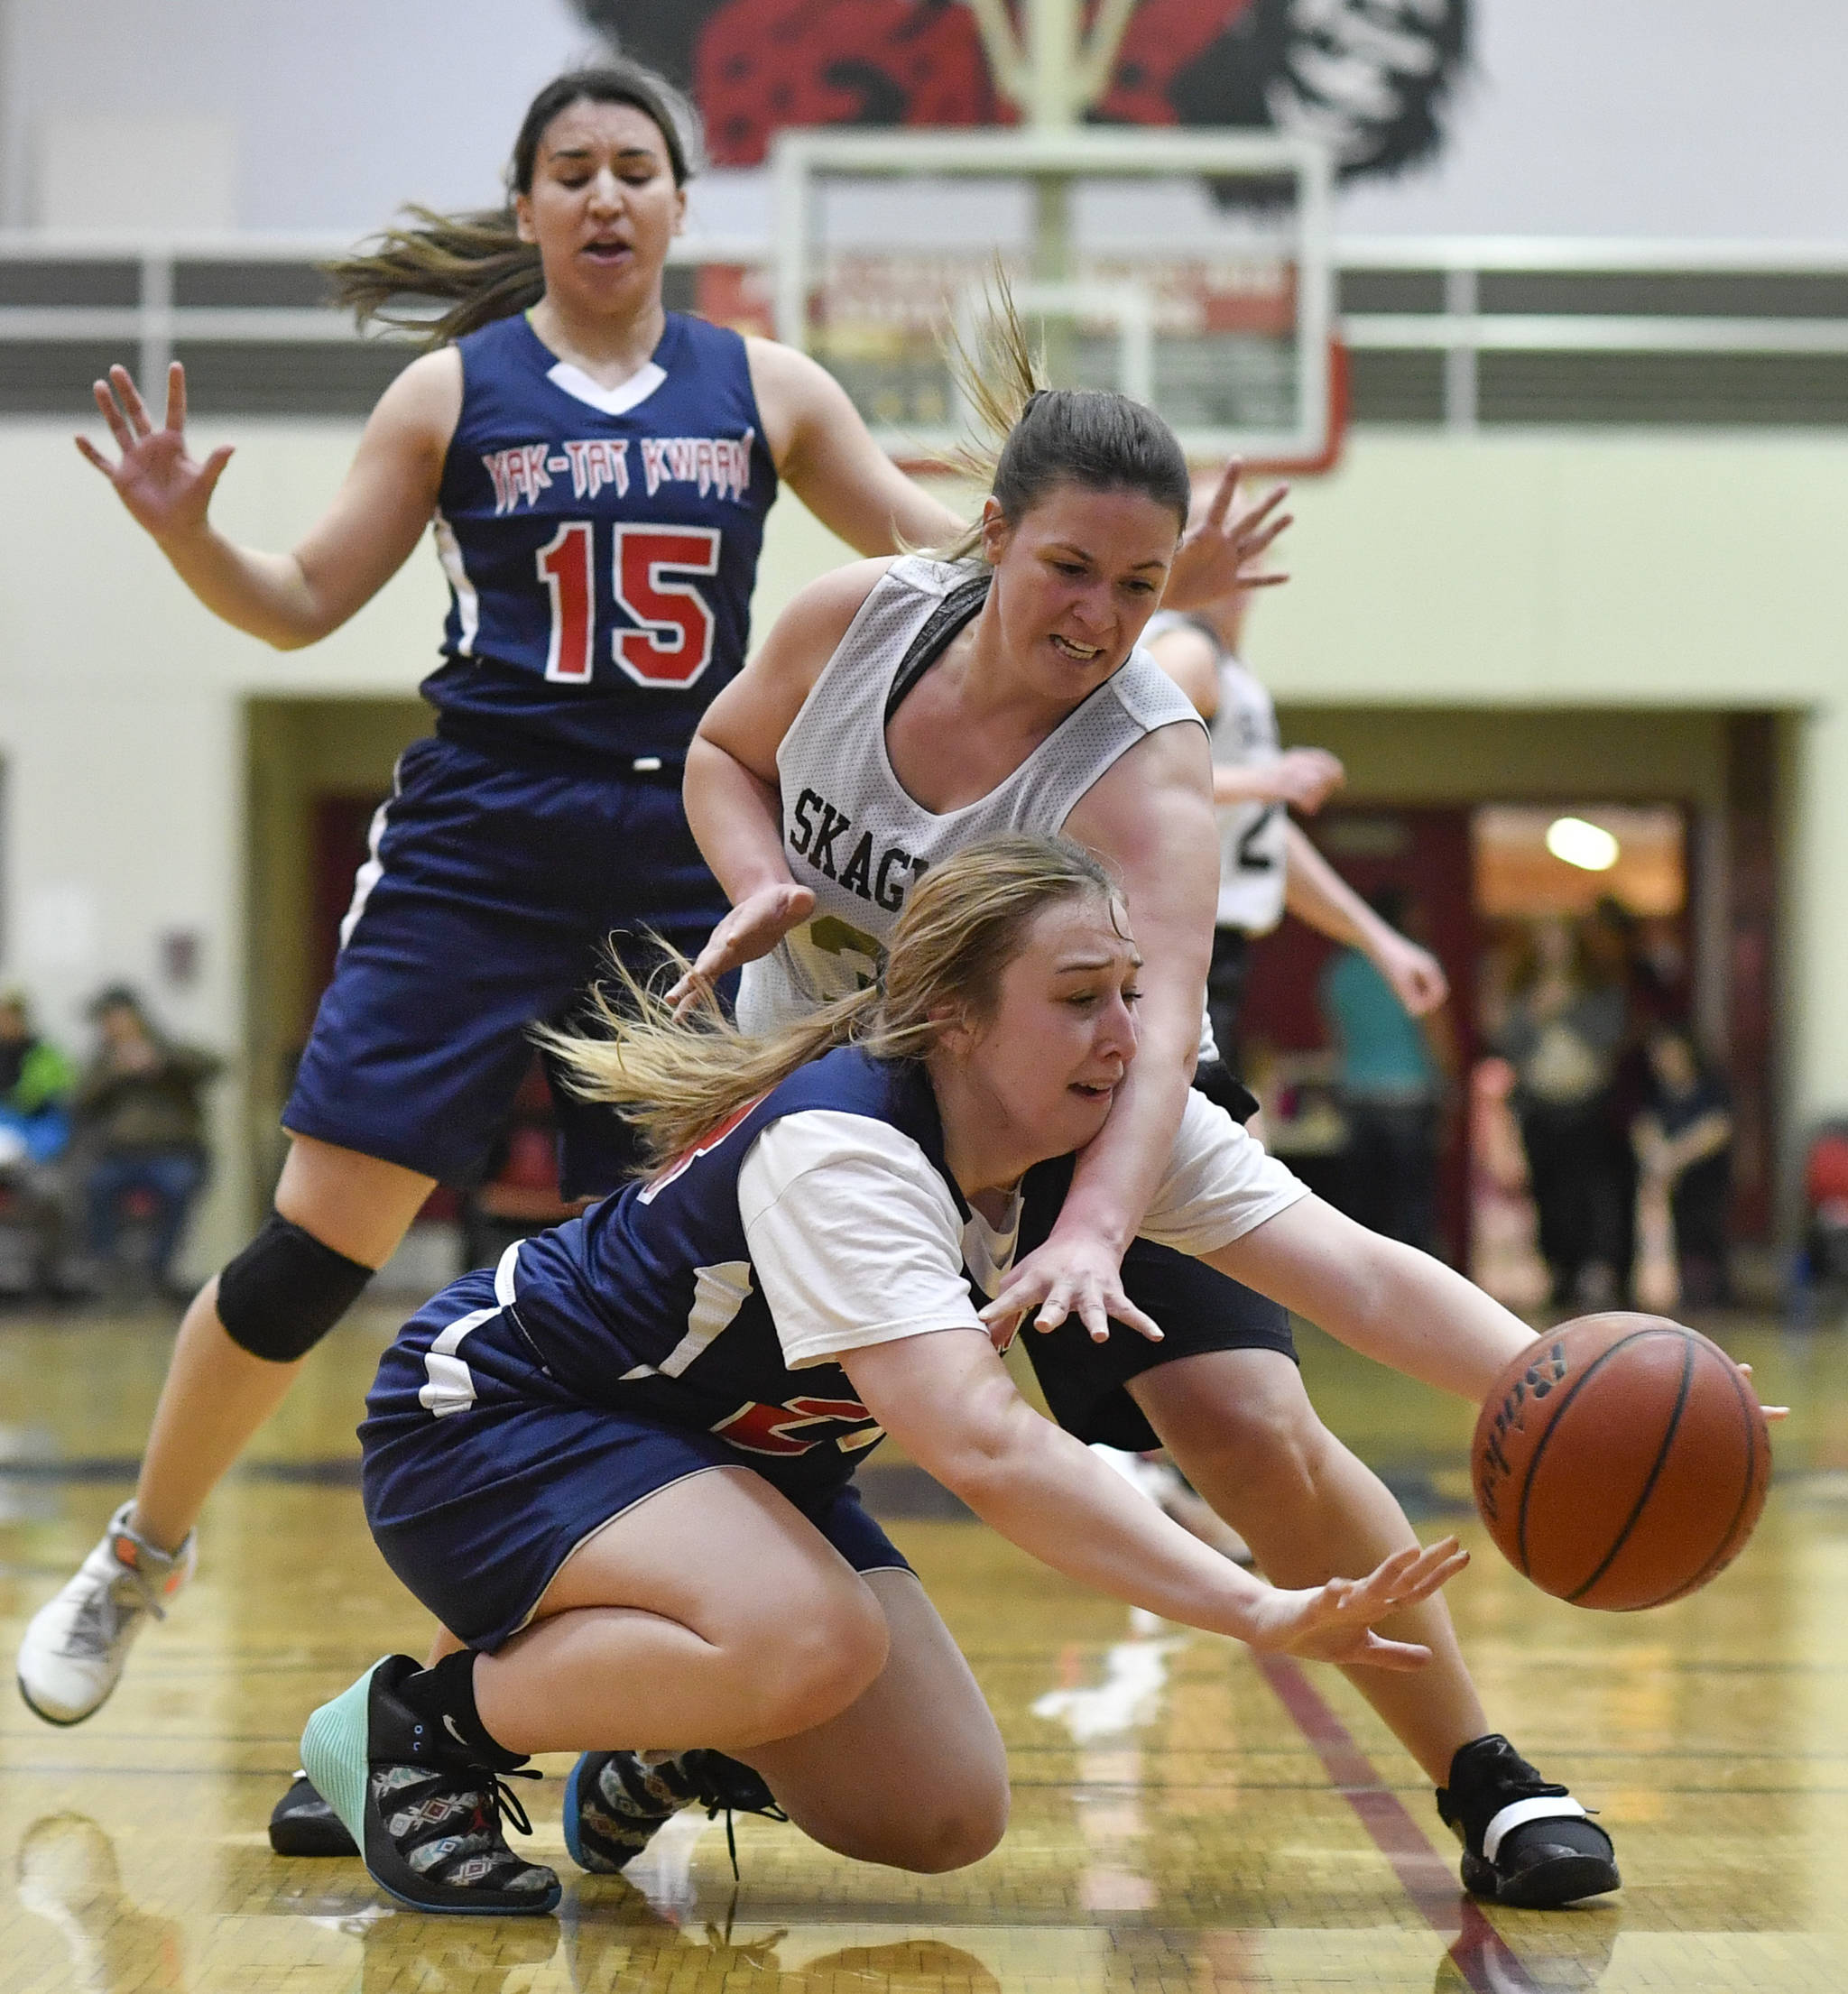 Yakutat's Janie Jensen, below, and Skagway's Tiffanie Ames dive for a loose ball during the women's bracket game at the Gold Medal Basketball Tournament on Thursday, March 21, 2019. (Michael Penn | Juneau Empire)